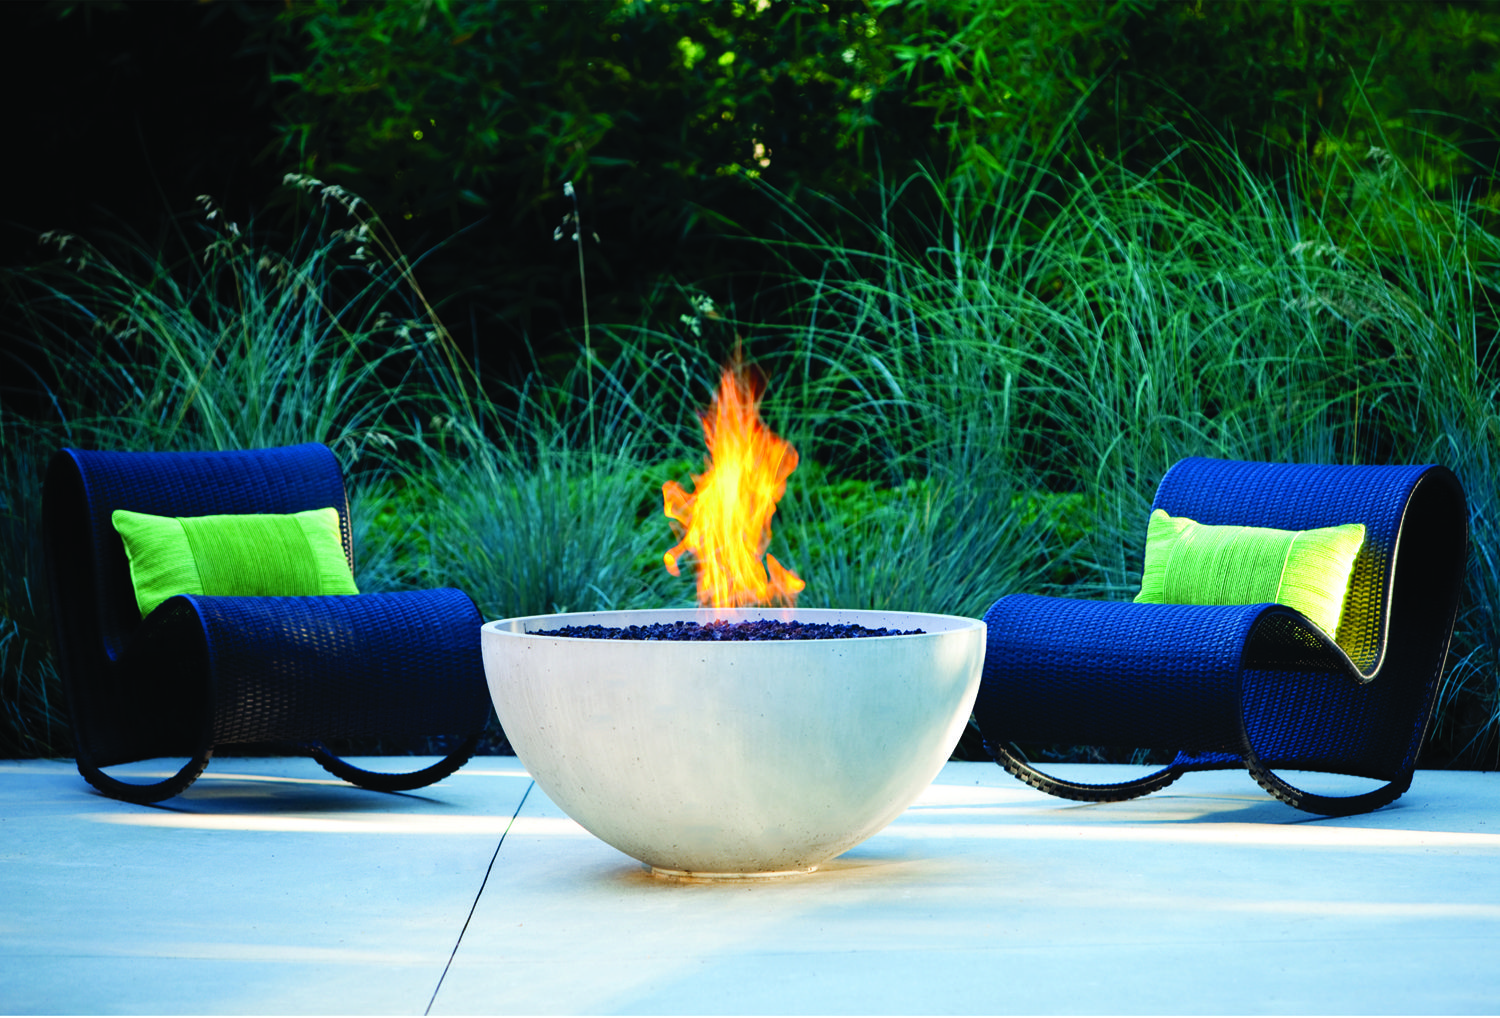 Outdoor Ribbon Burner Fire Pit Bing Images With Images